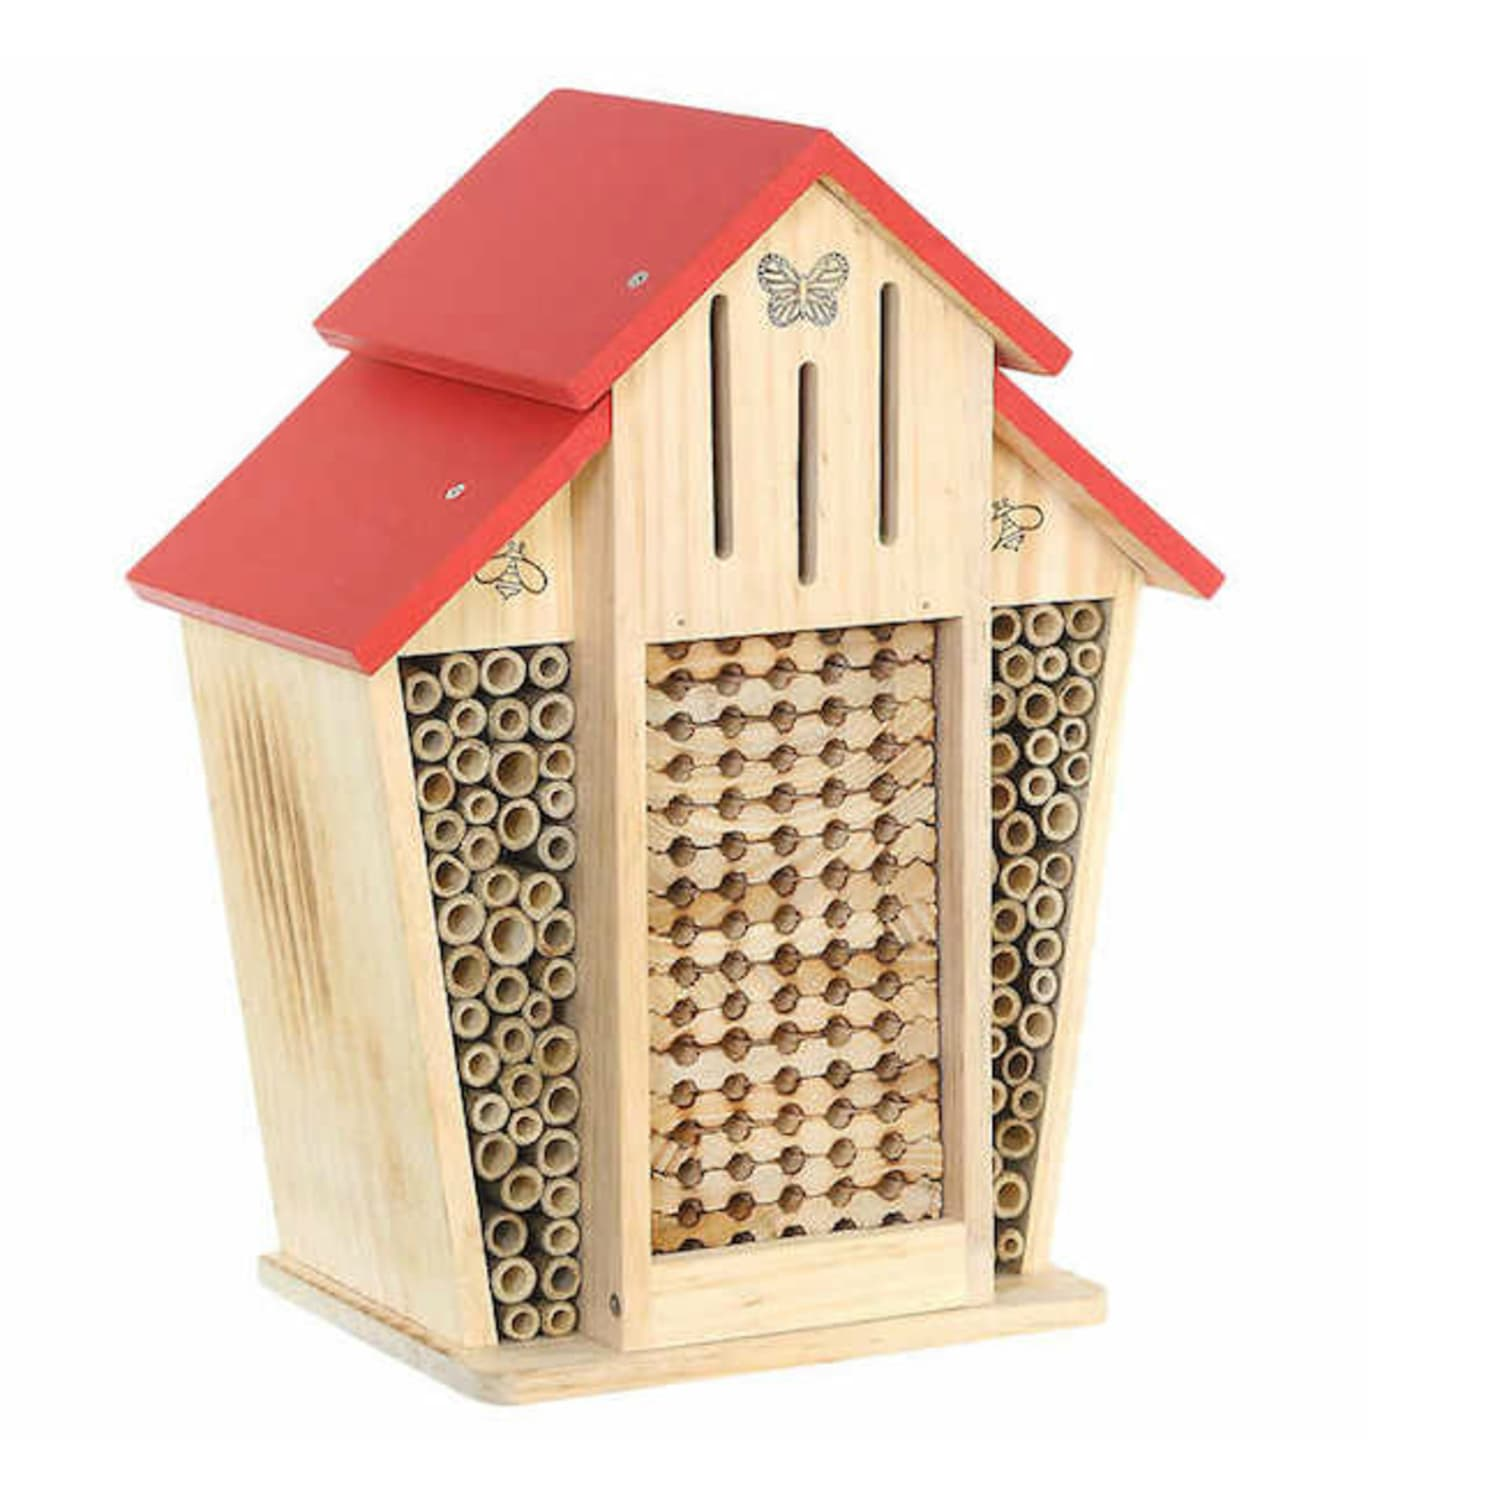 Costco Sells A Native Bee House To Help The Bee Population